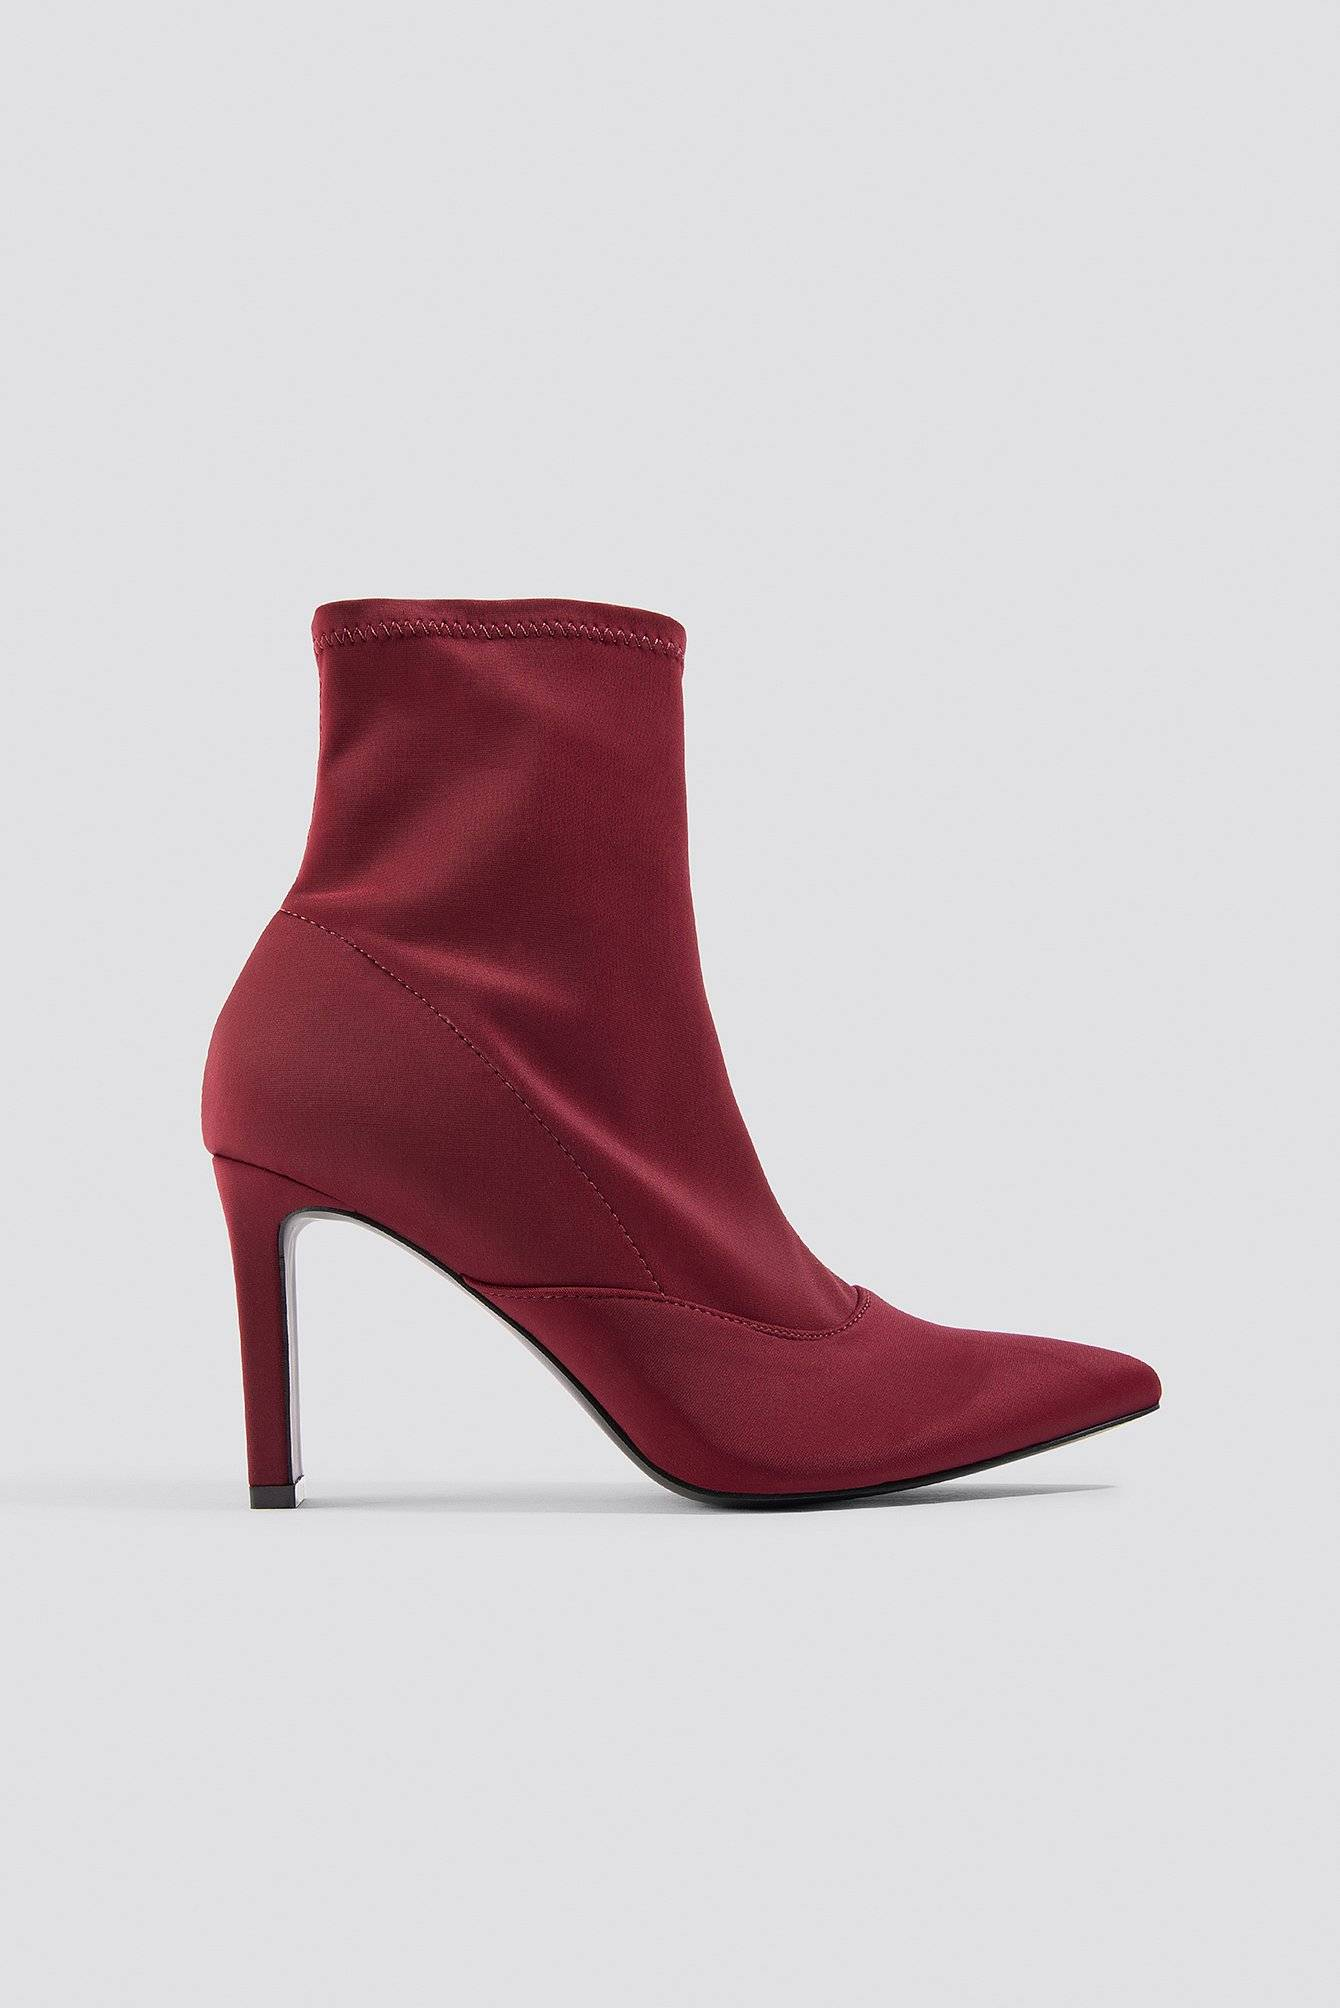 Dilara x NA-KD Rectangular Heel Satin Boots - Red